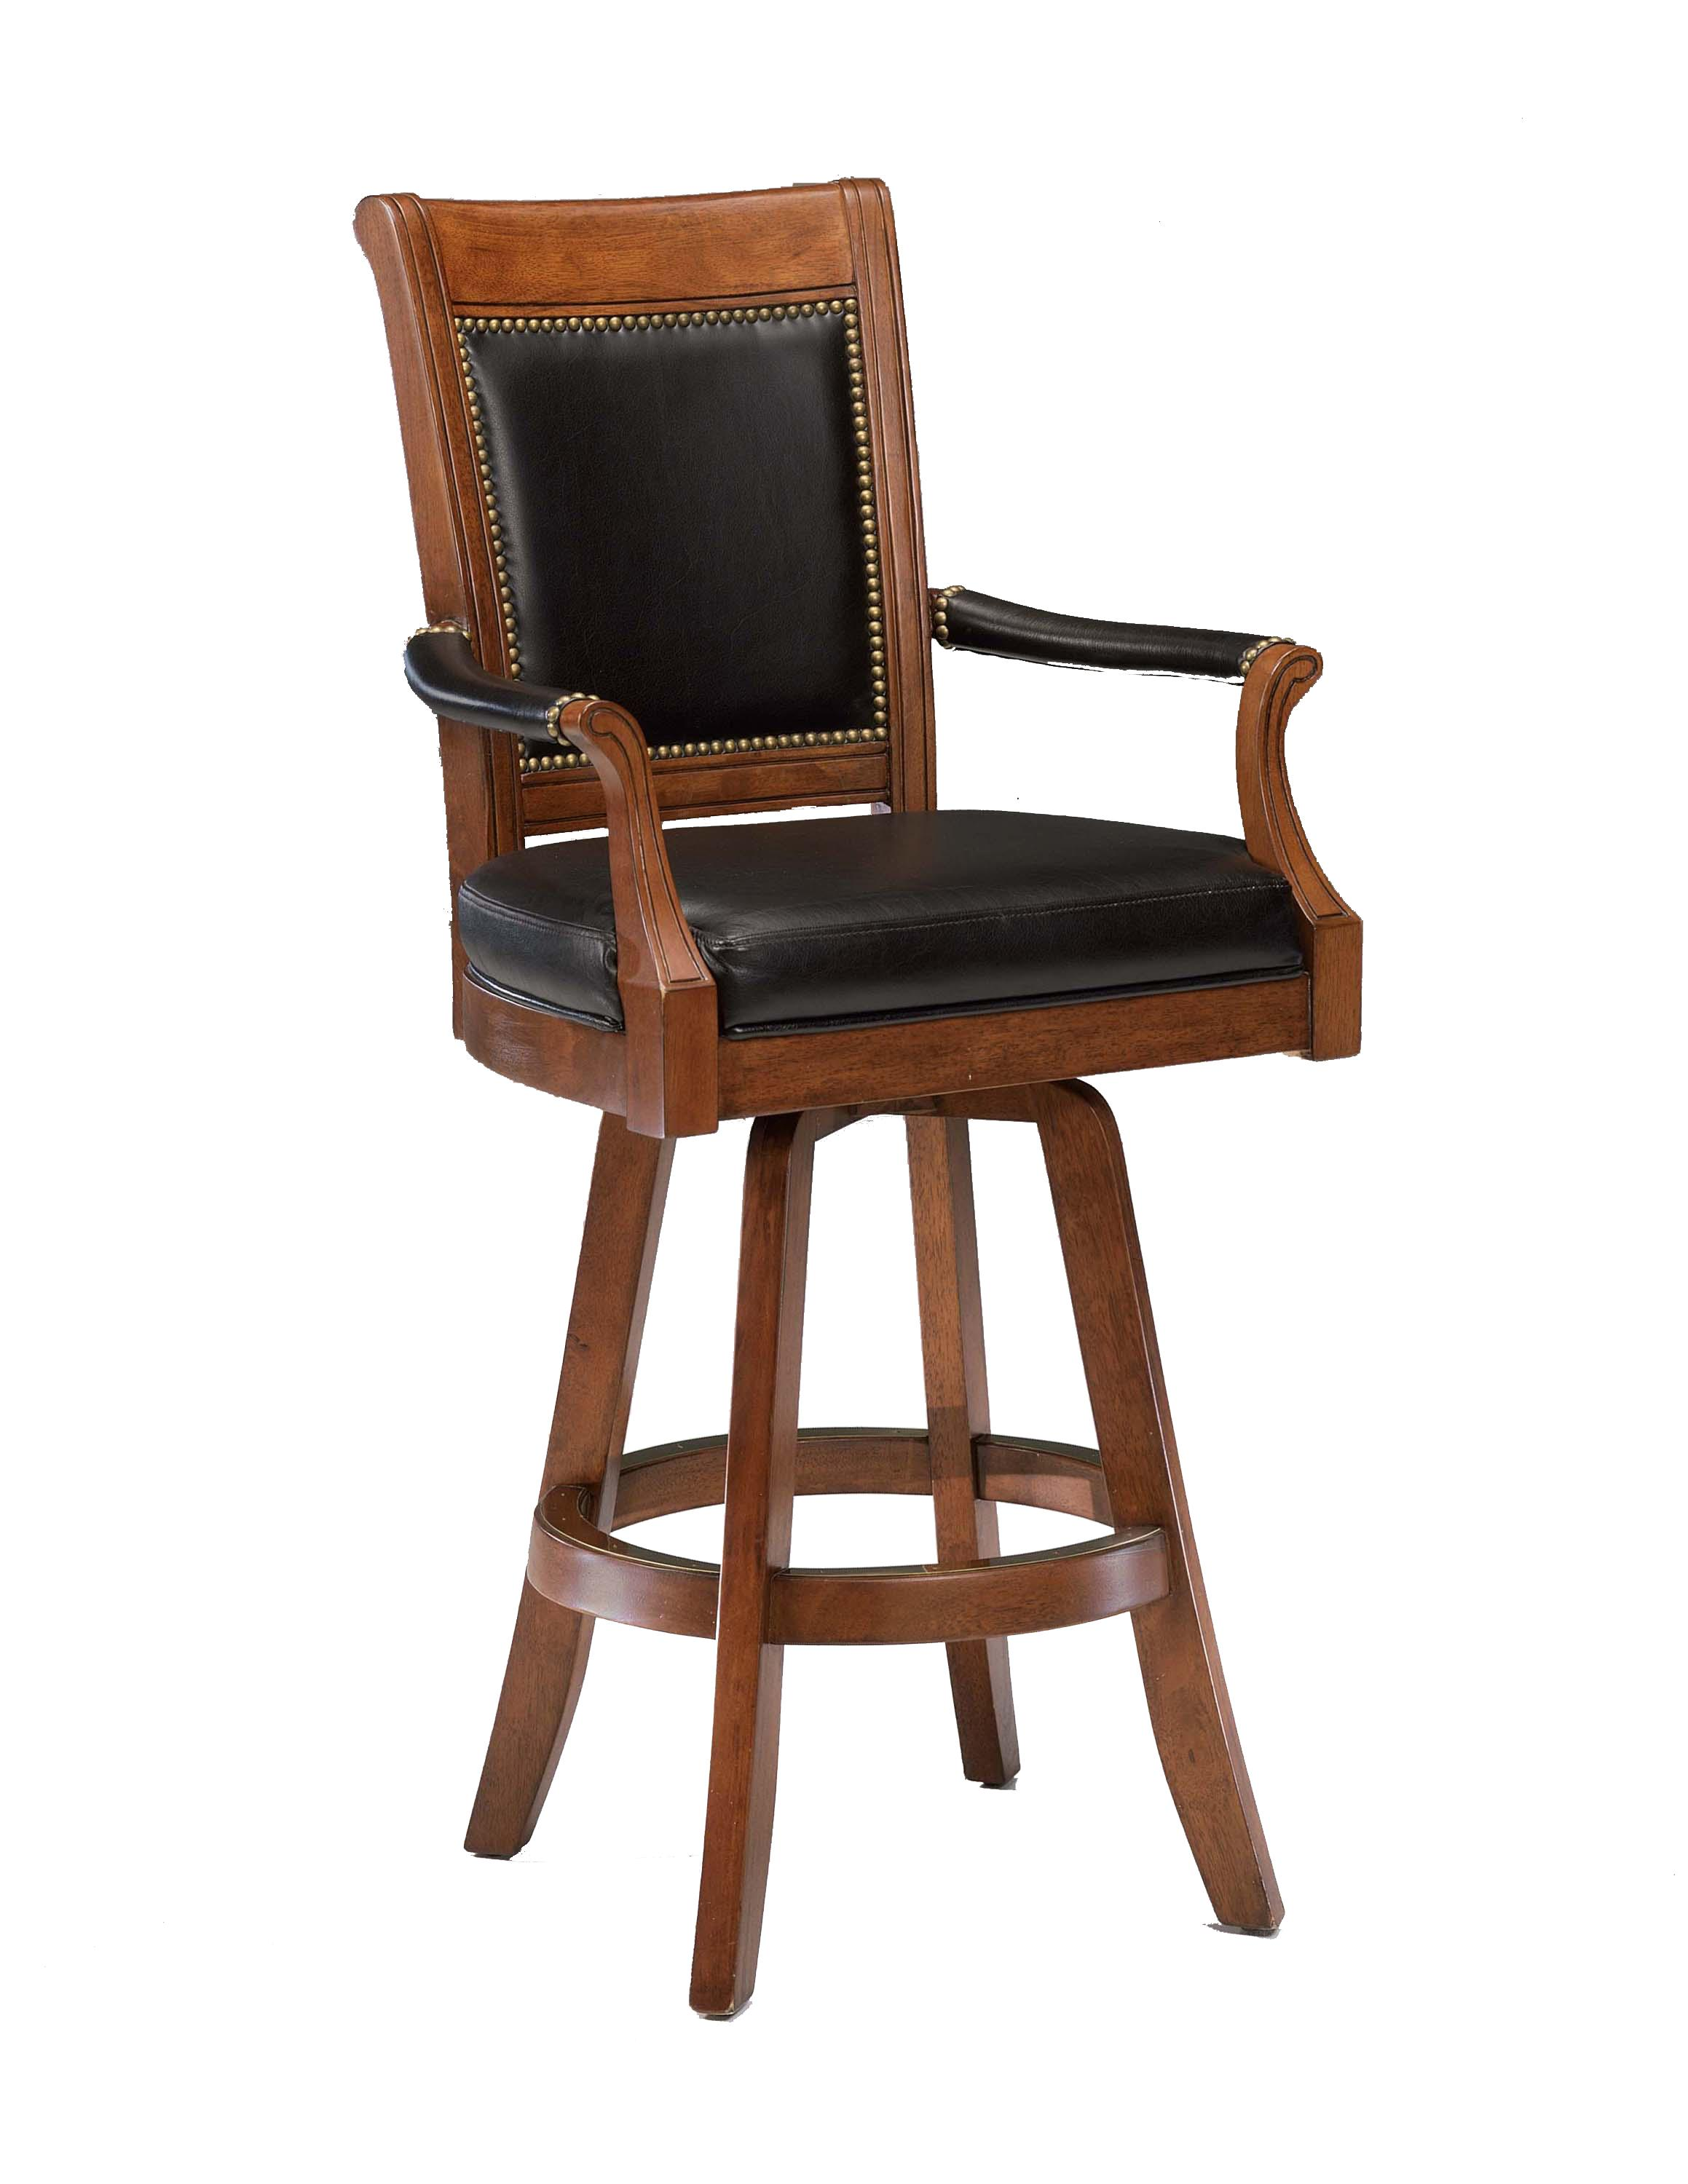 Game Stools & Chairs Kingston Game Swivel Leather Back Barstool at Ruby Gordon Home